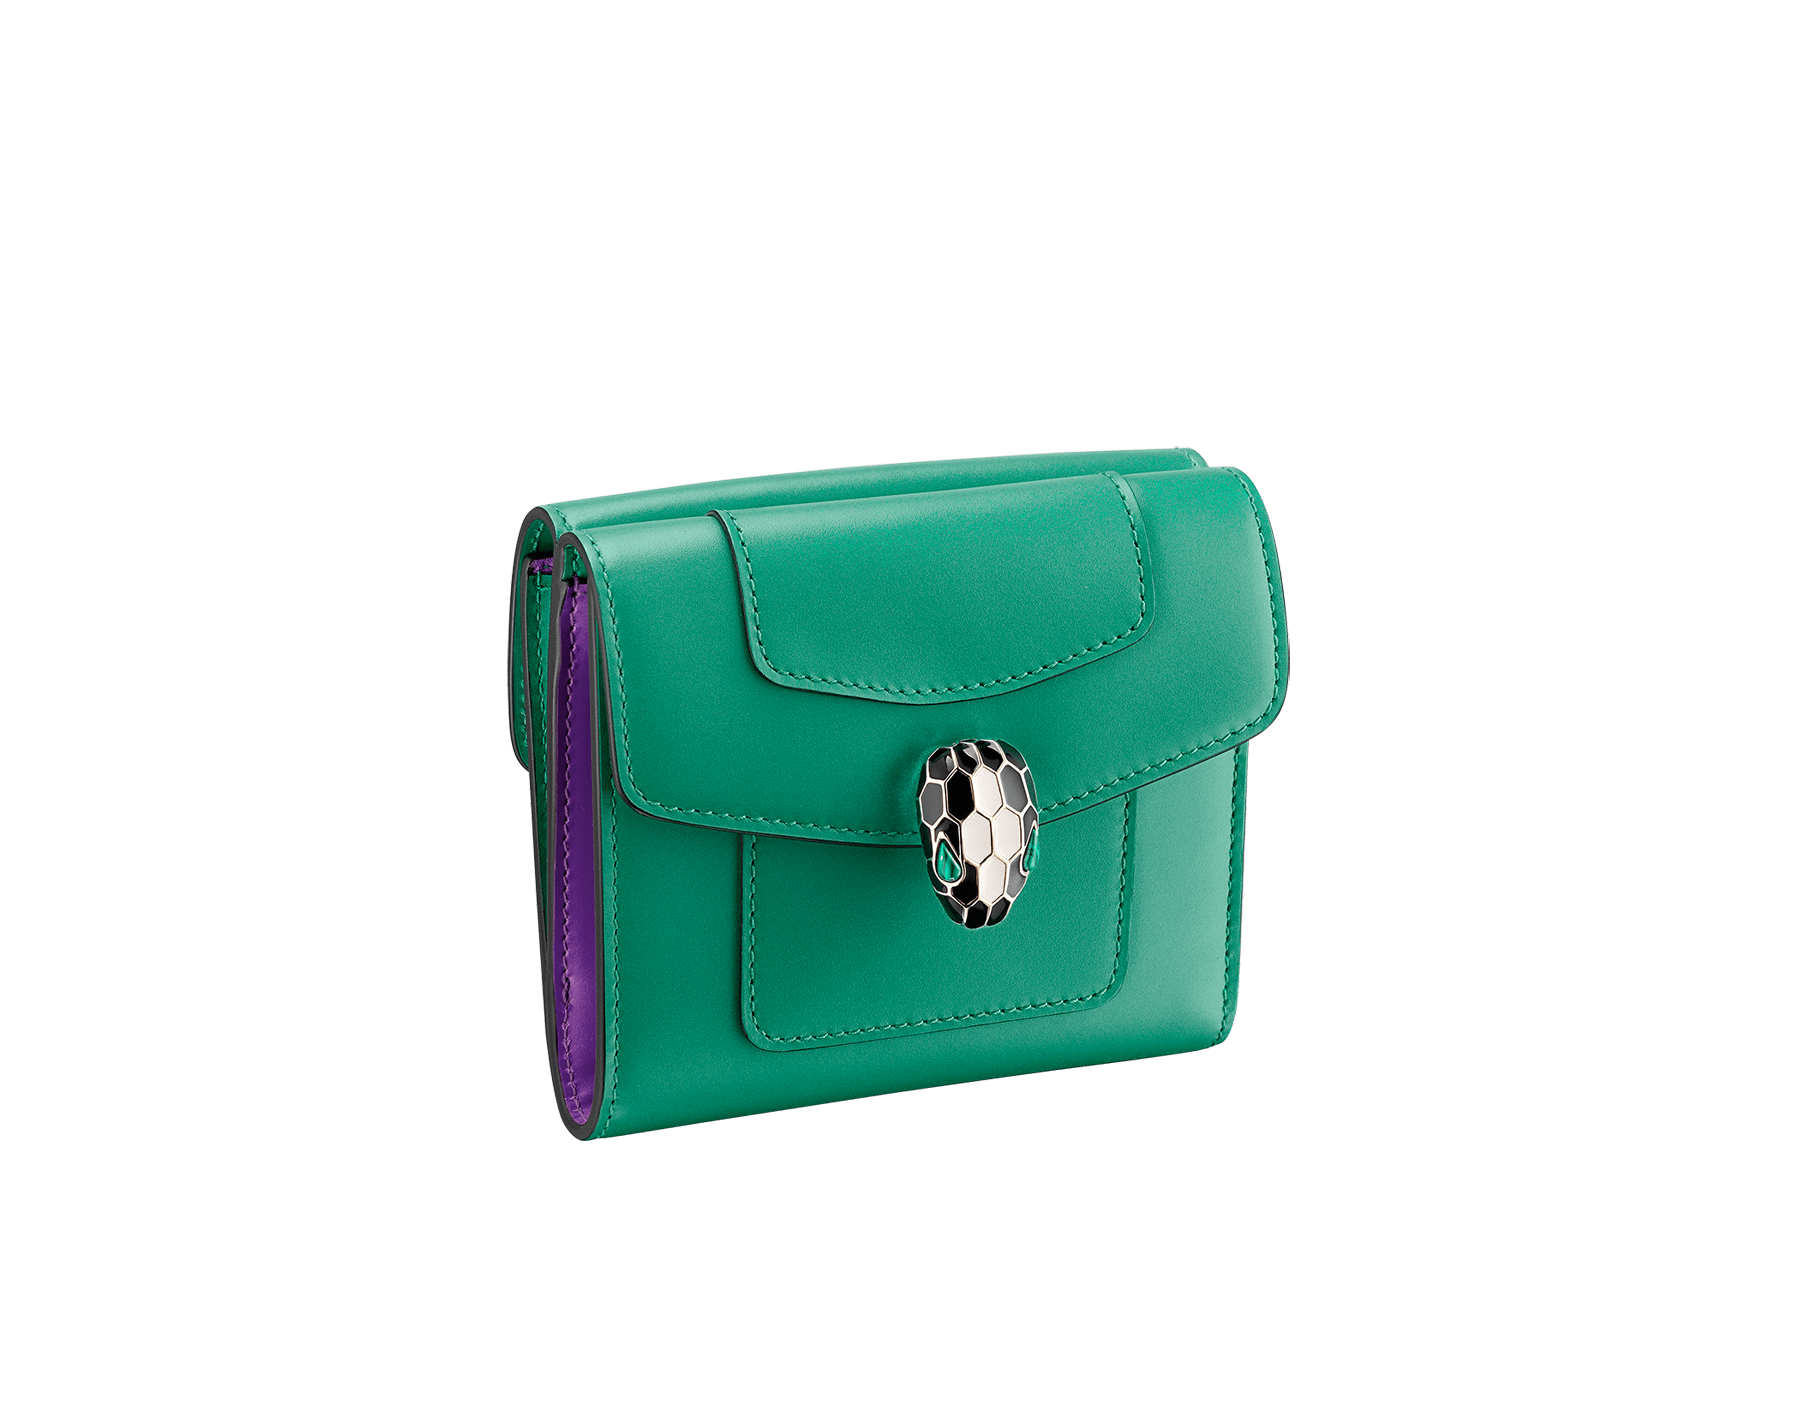 Serpenti Forever square compact wallet in daisy topaz and crystal rose calf leather. Iconic snakehead stud closure in black and white agate enamel, with green malachite eyes. SEA-WLT-COMPACT-3Fa image 1